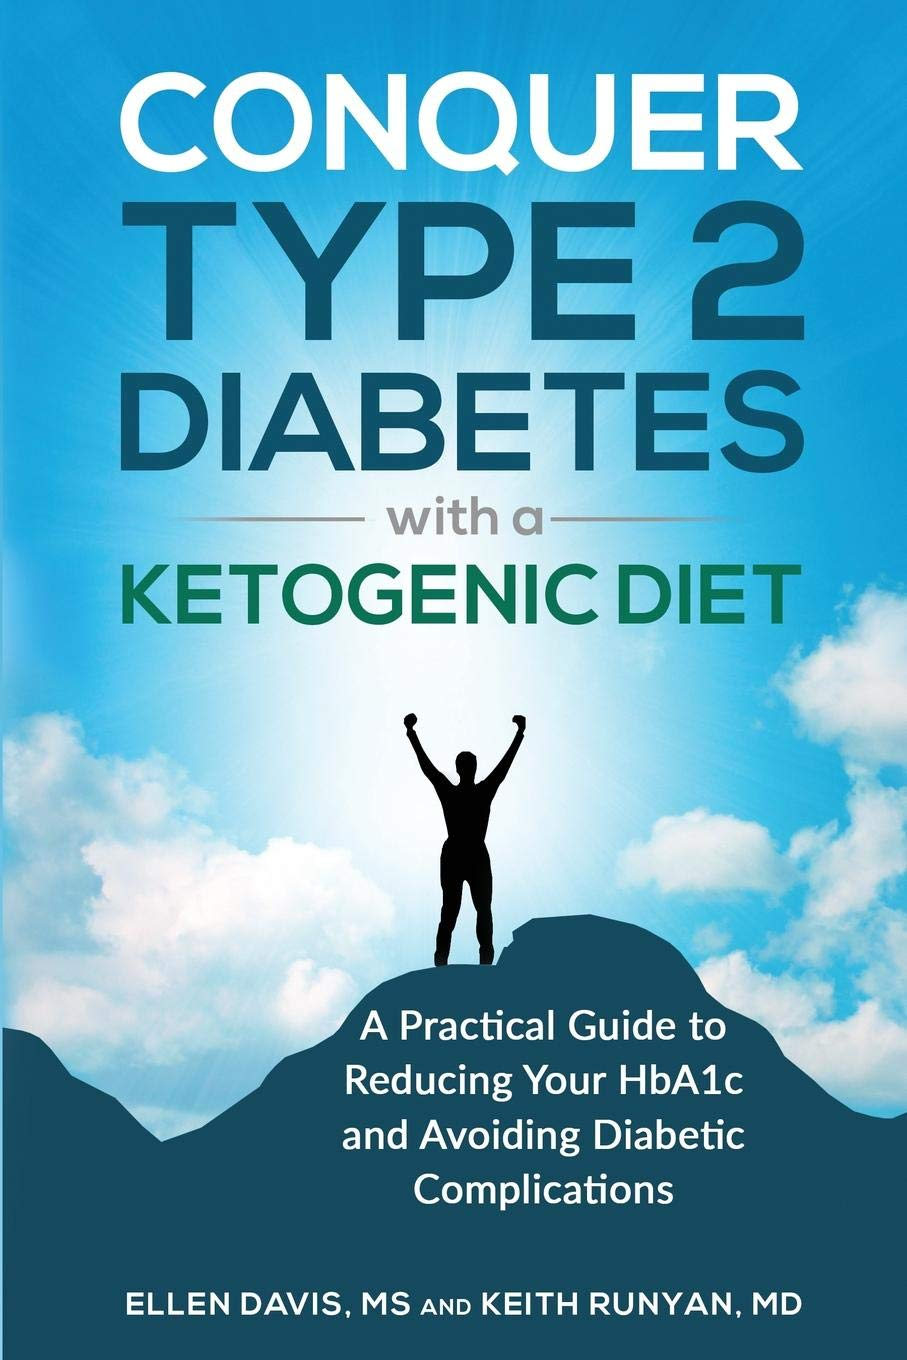 what is a keto diet for diabetics